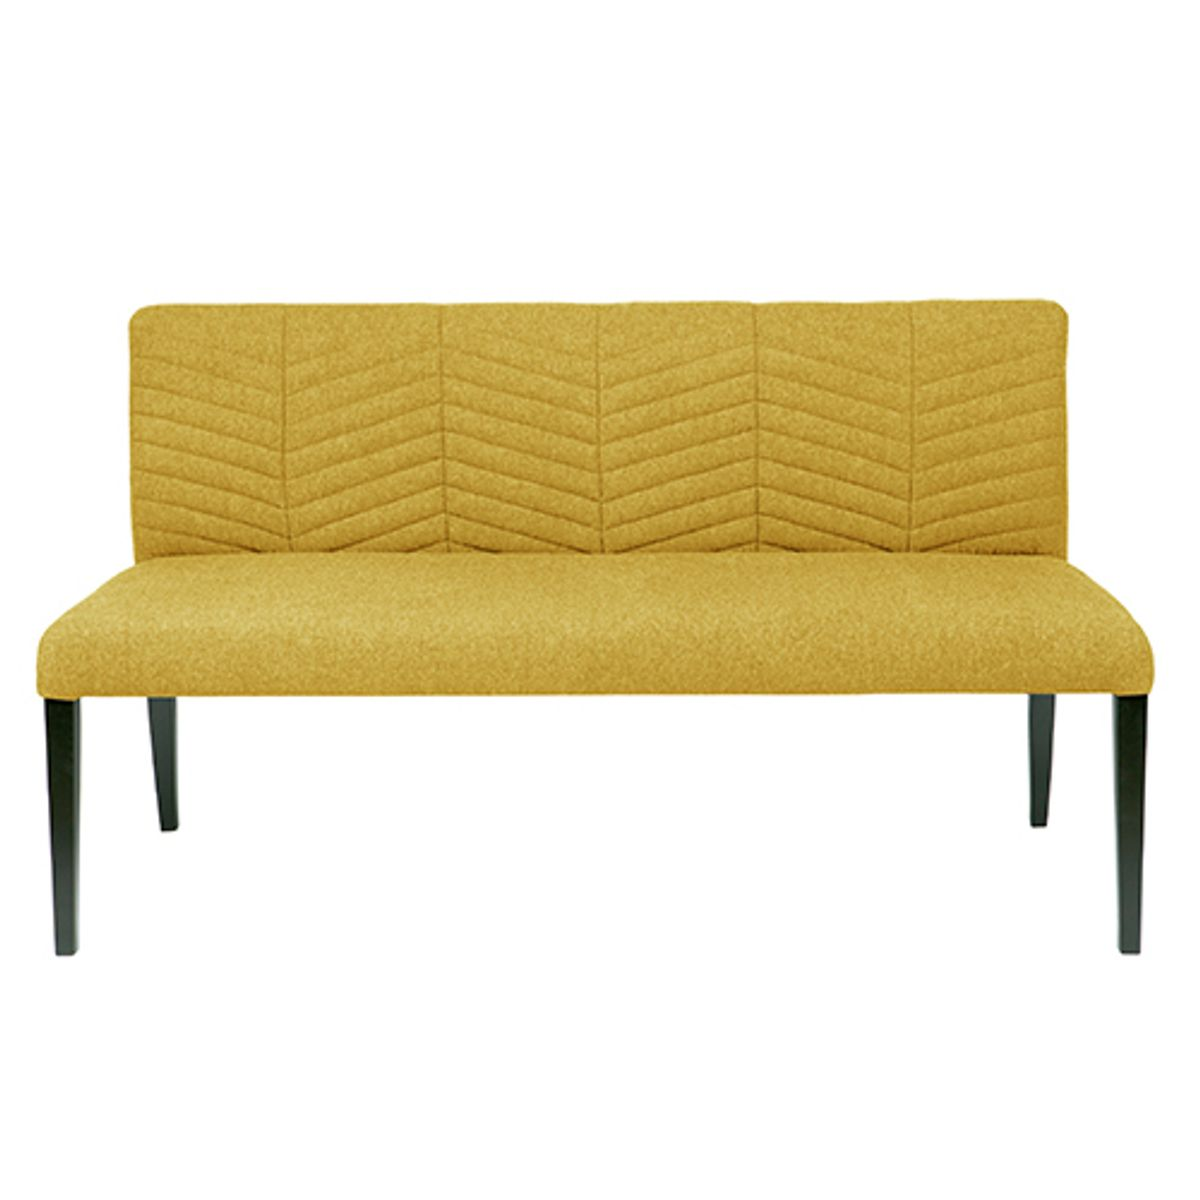 Banquette en tissu polyester couture chevrons Nora  - moutarde